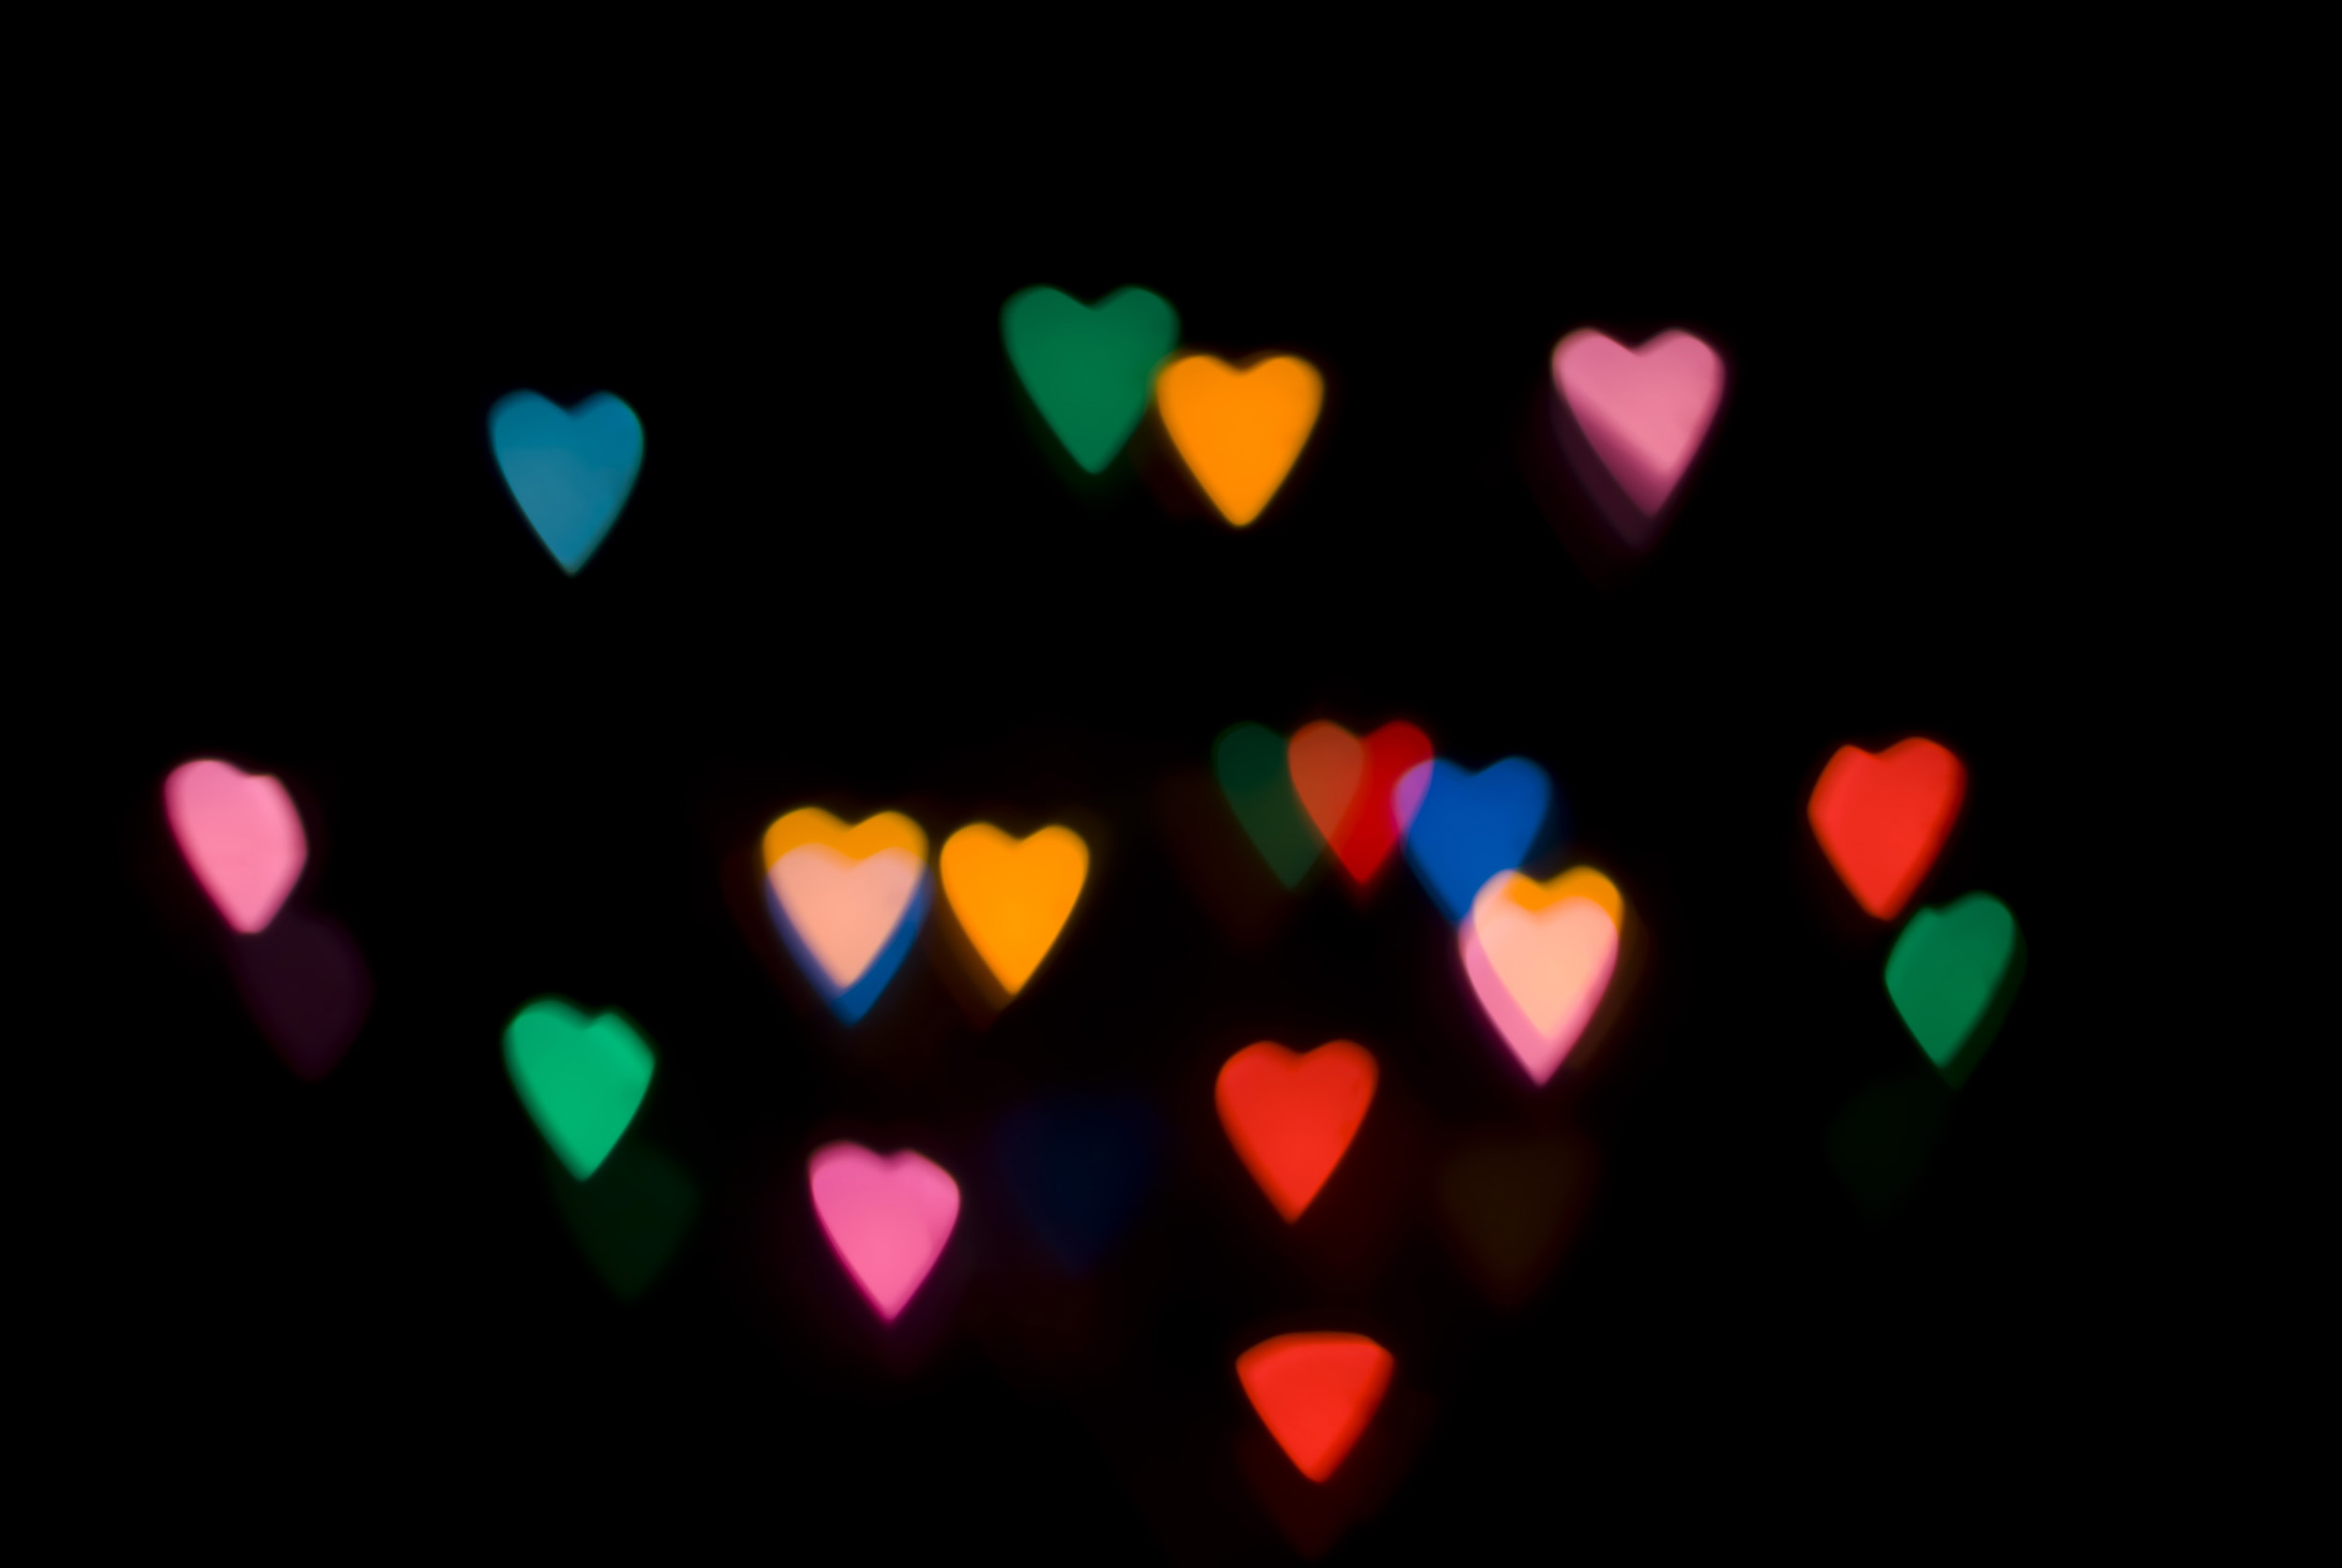 Free Stock Photo 1773-bokeh love hearts freeimageslive